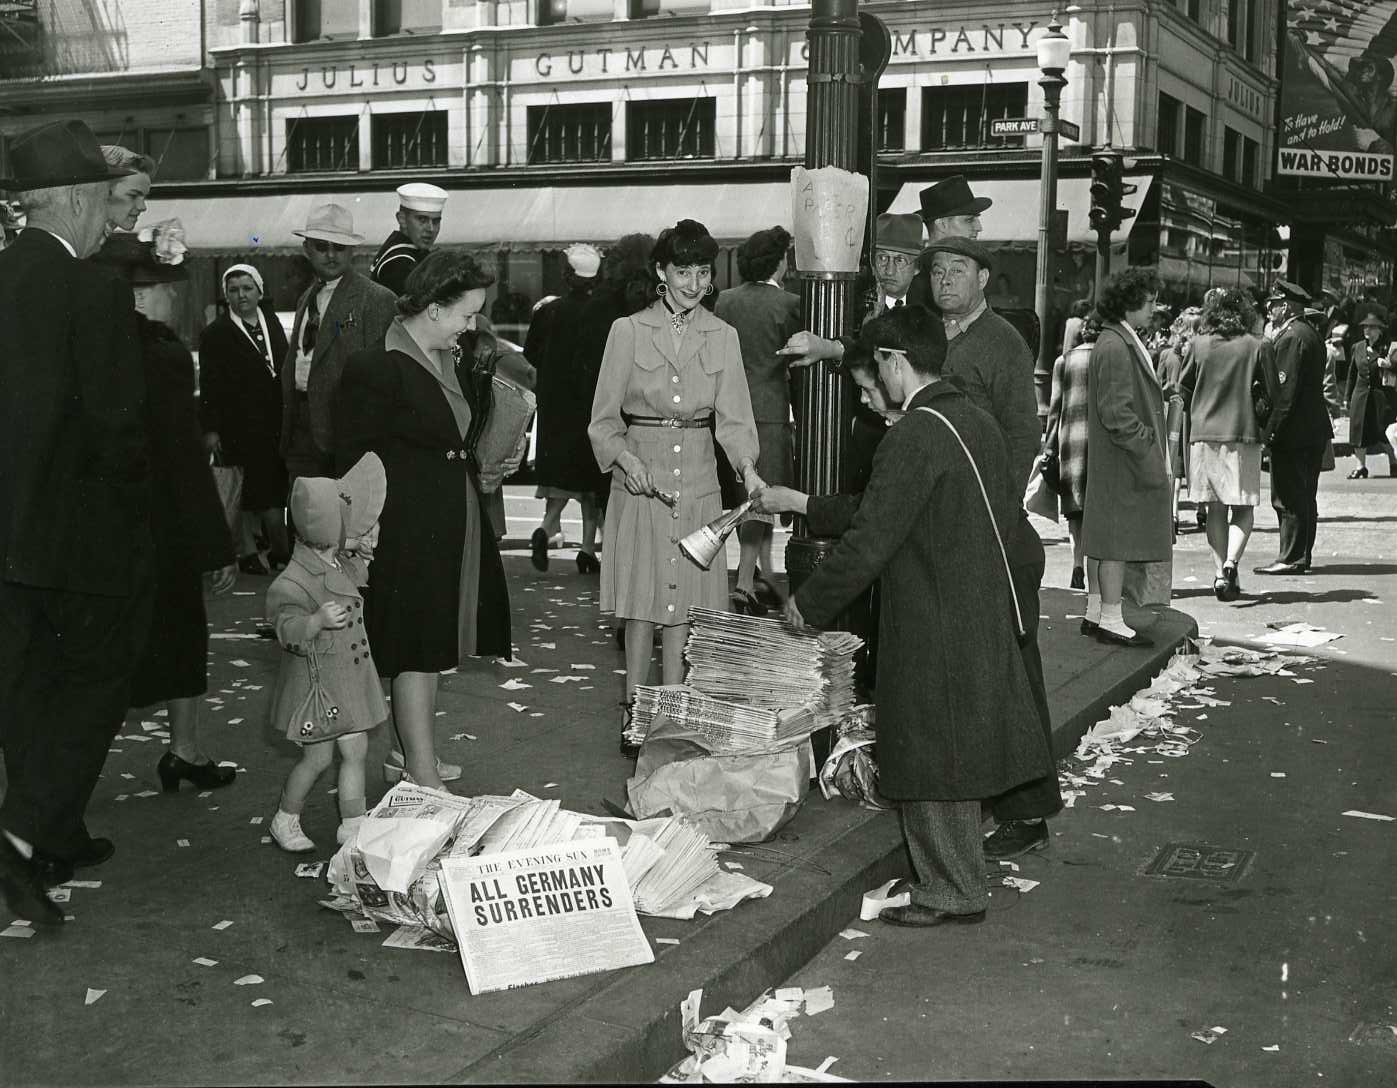 Victory in Europe (VE) Day in Baltimore